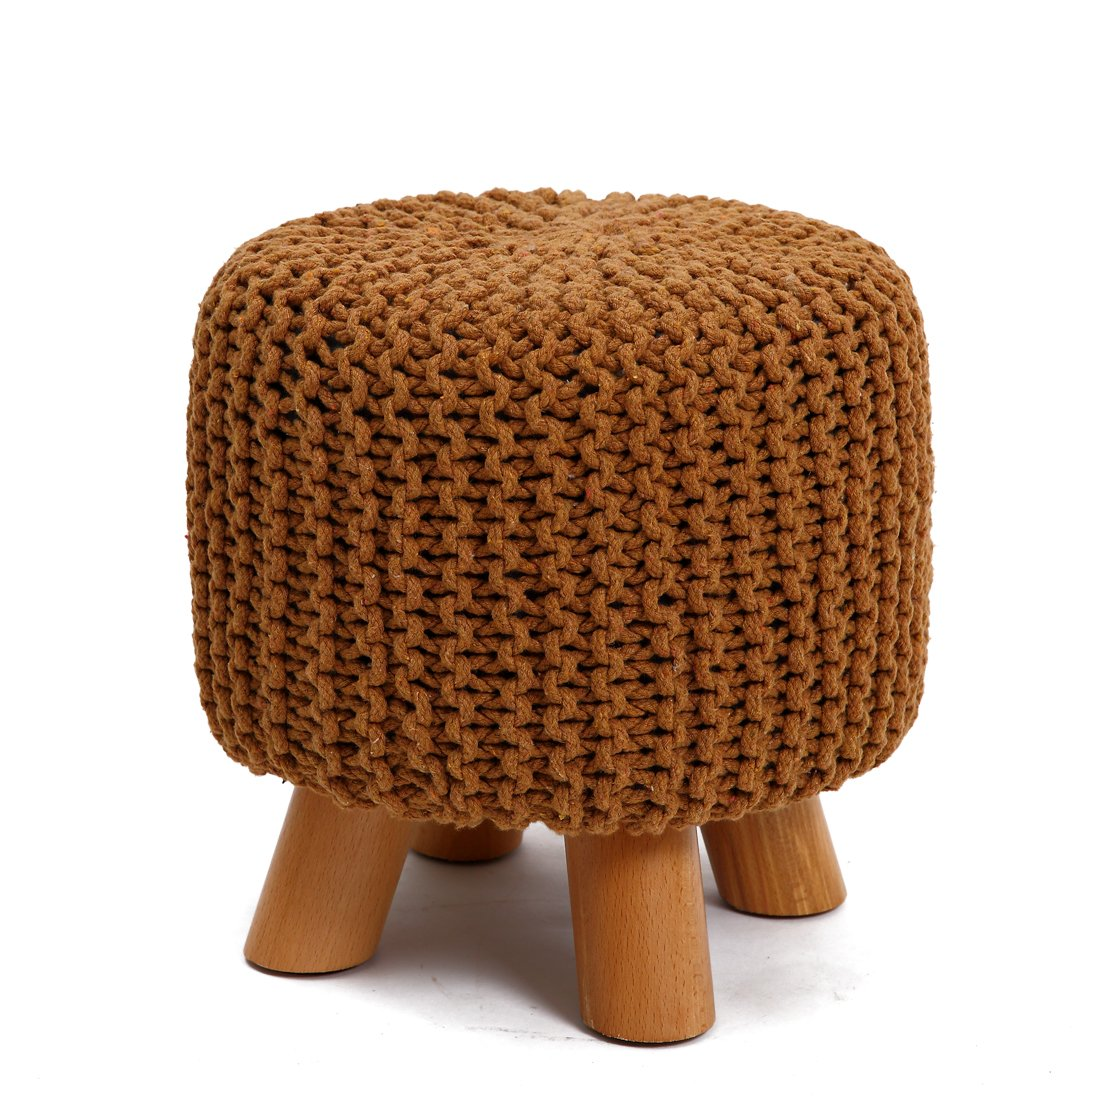 UUSSHOP Wood Support Upholstered Footrest Footstool Ottoman Pouffe Chair Stool Bench with 4 Beech Legs and Removable Handmade Knitted Woven Cotton Cover (Brown)